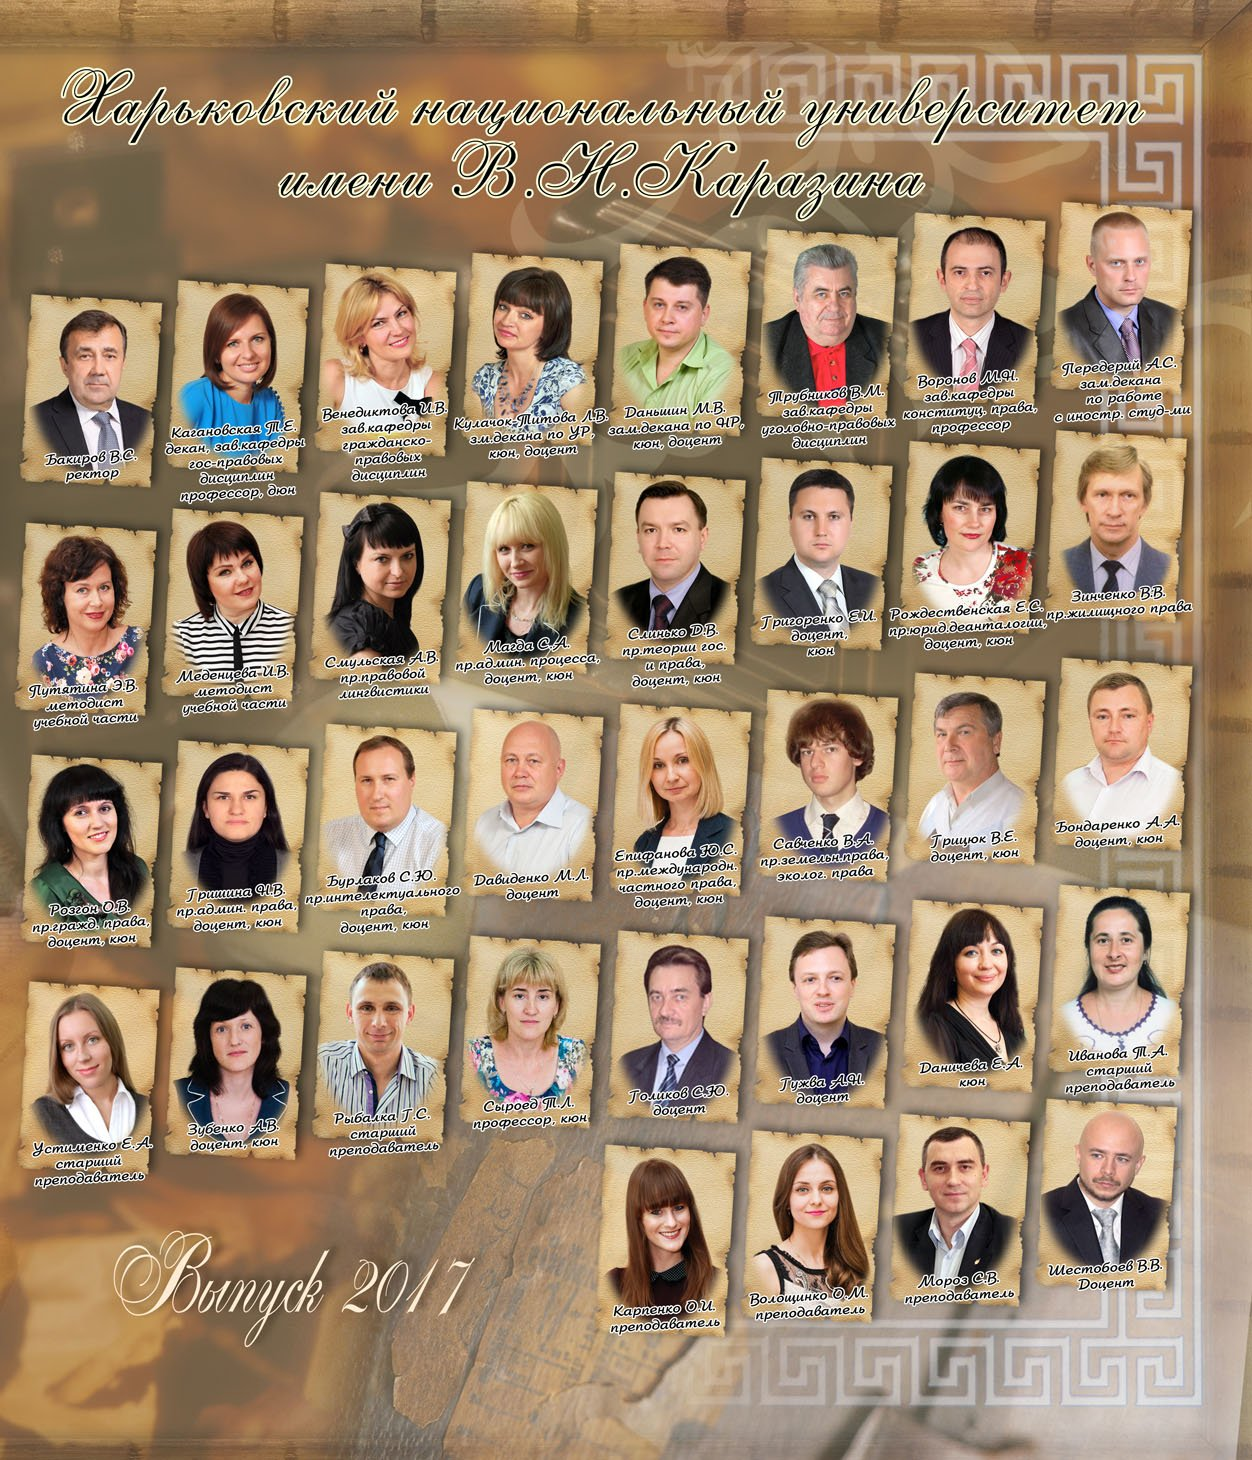 https://school-photo.com.ua/wp-content/uploads/2017/08/2-1.jpg